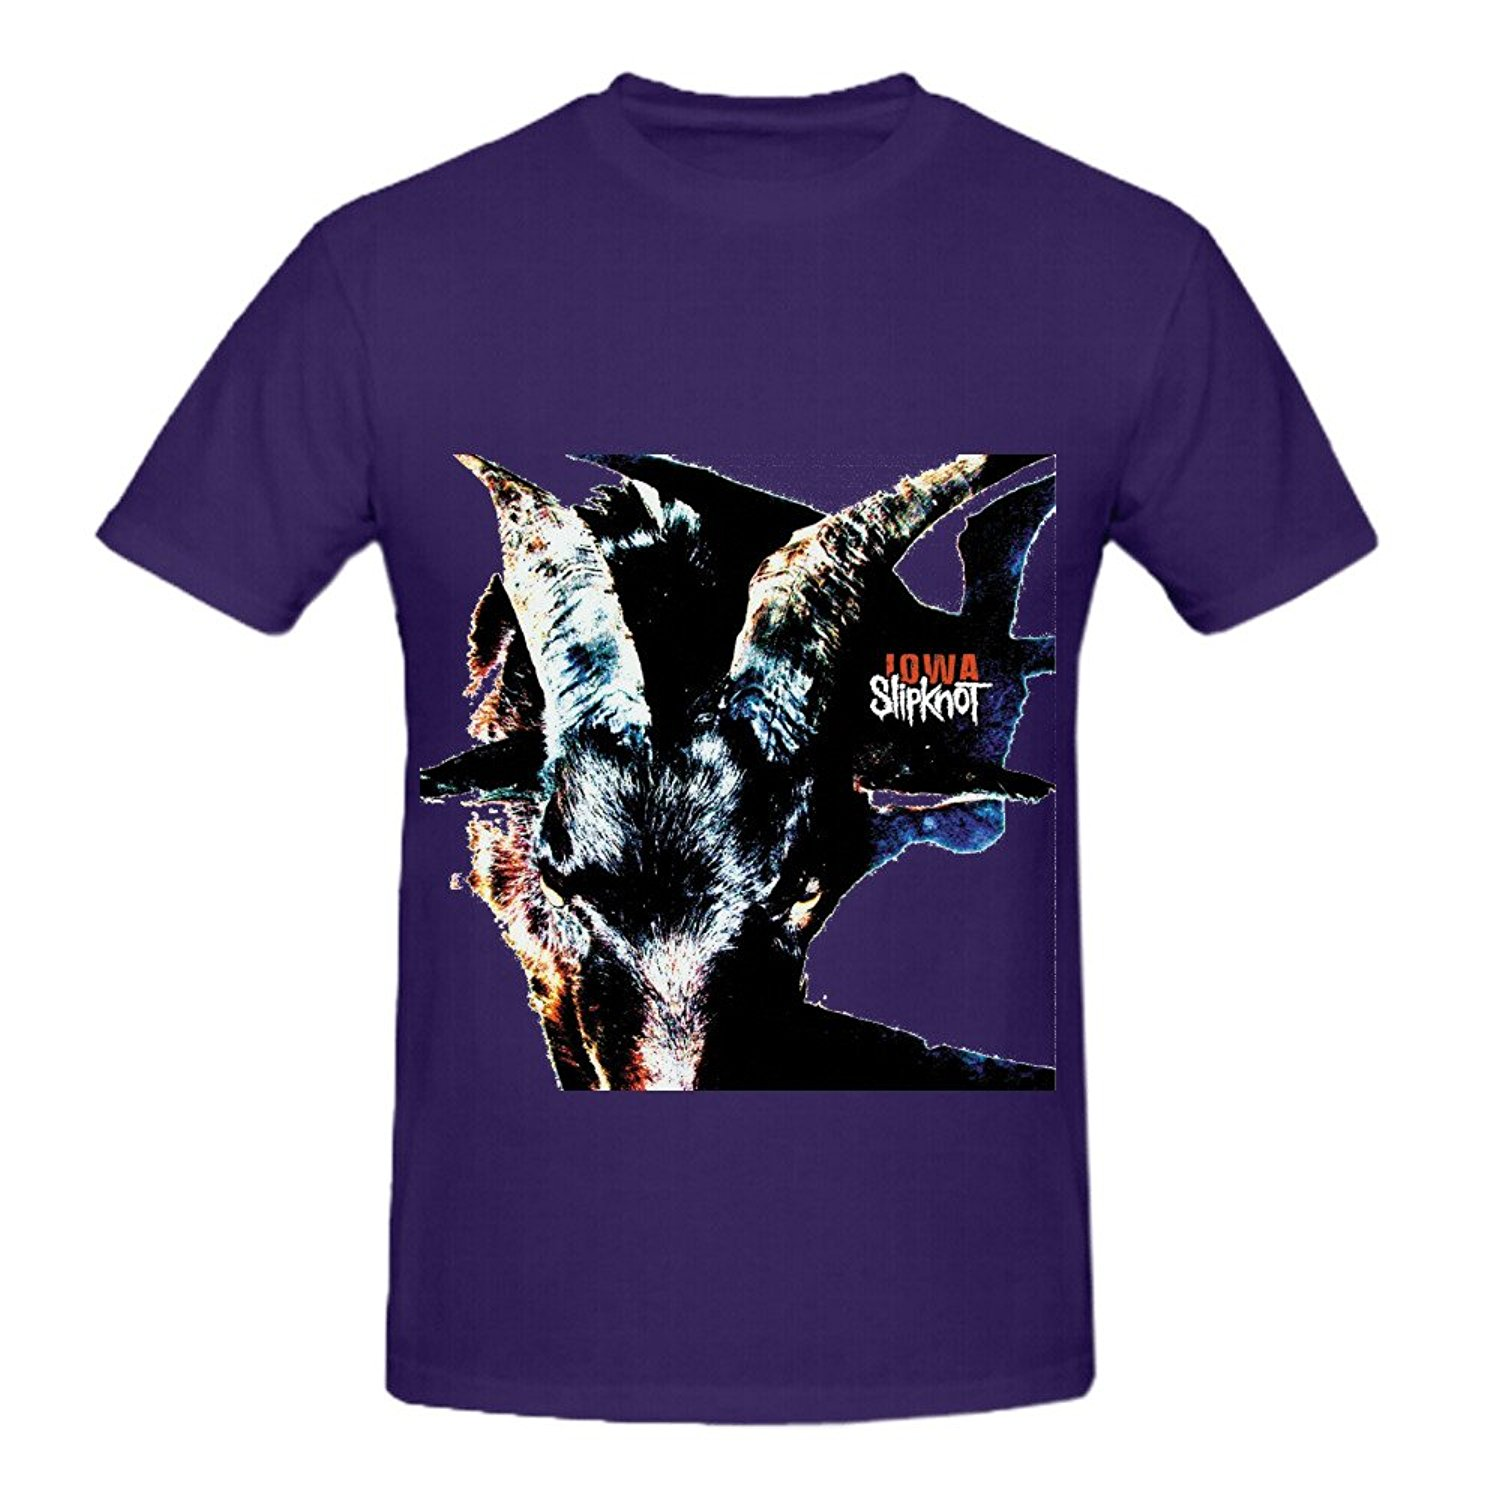 US $12 25 |Gildan Slipknot Iowa 80s Album Cover Men Crew Neck Design T  Shirts-in T-Shirts from Men's Clothing on Aliexpress com | Alibaba Group